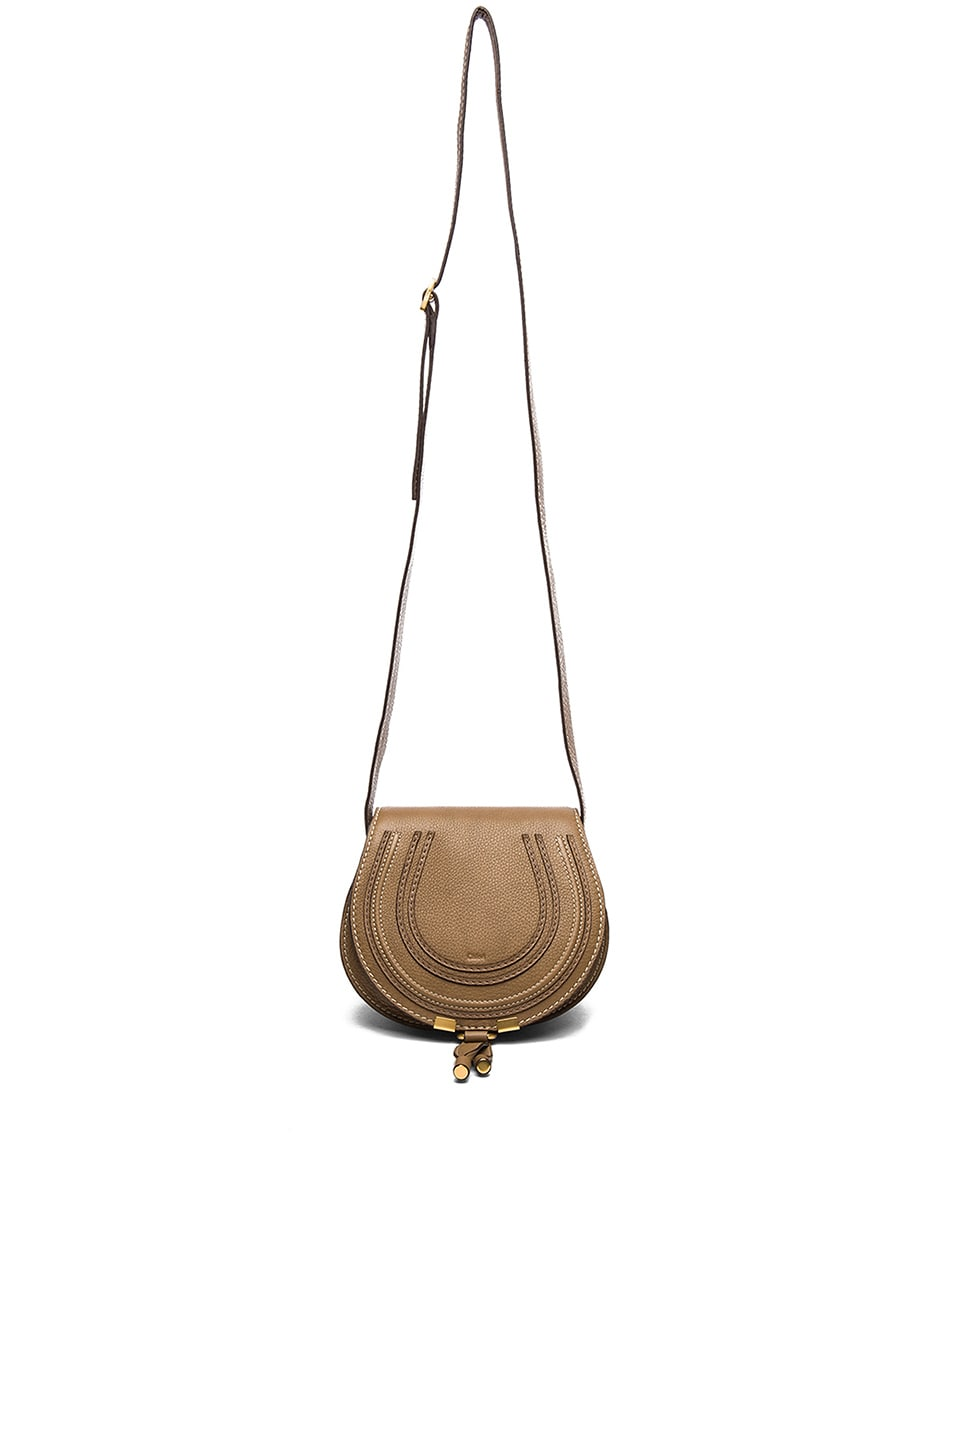 Image 5 of Chloe Small Marcie Saddle Bag in Nut